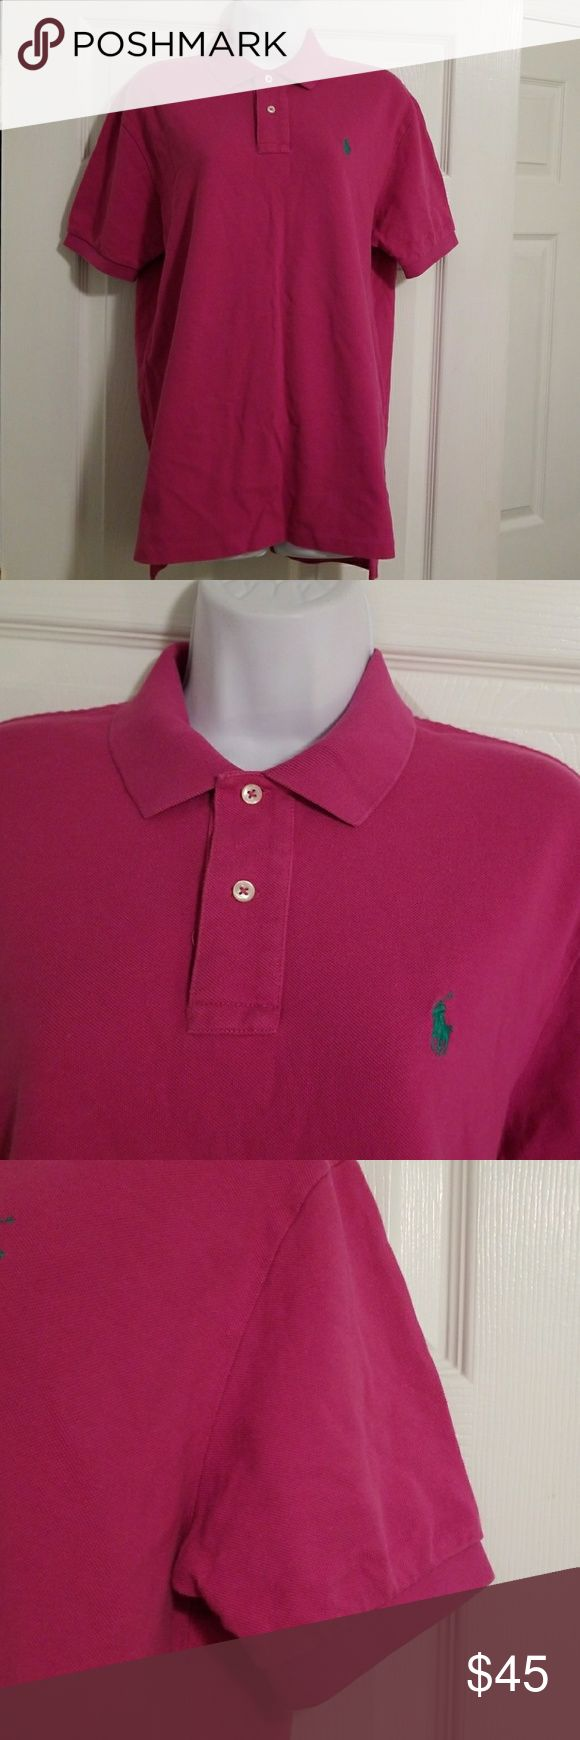 Mens Polo Ralph Laurn Pink Size M Mens Polo Ralph Laurn Pink Size M Green Horse No tags but new shirt Polo by Ralph Lauren Shirts Polos